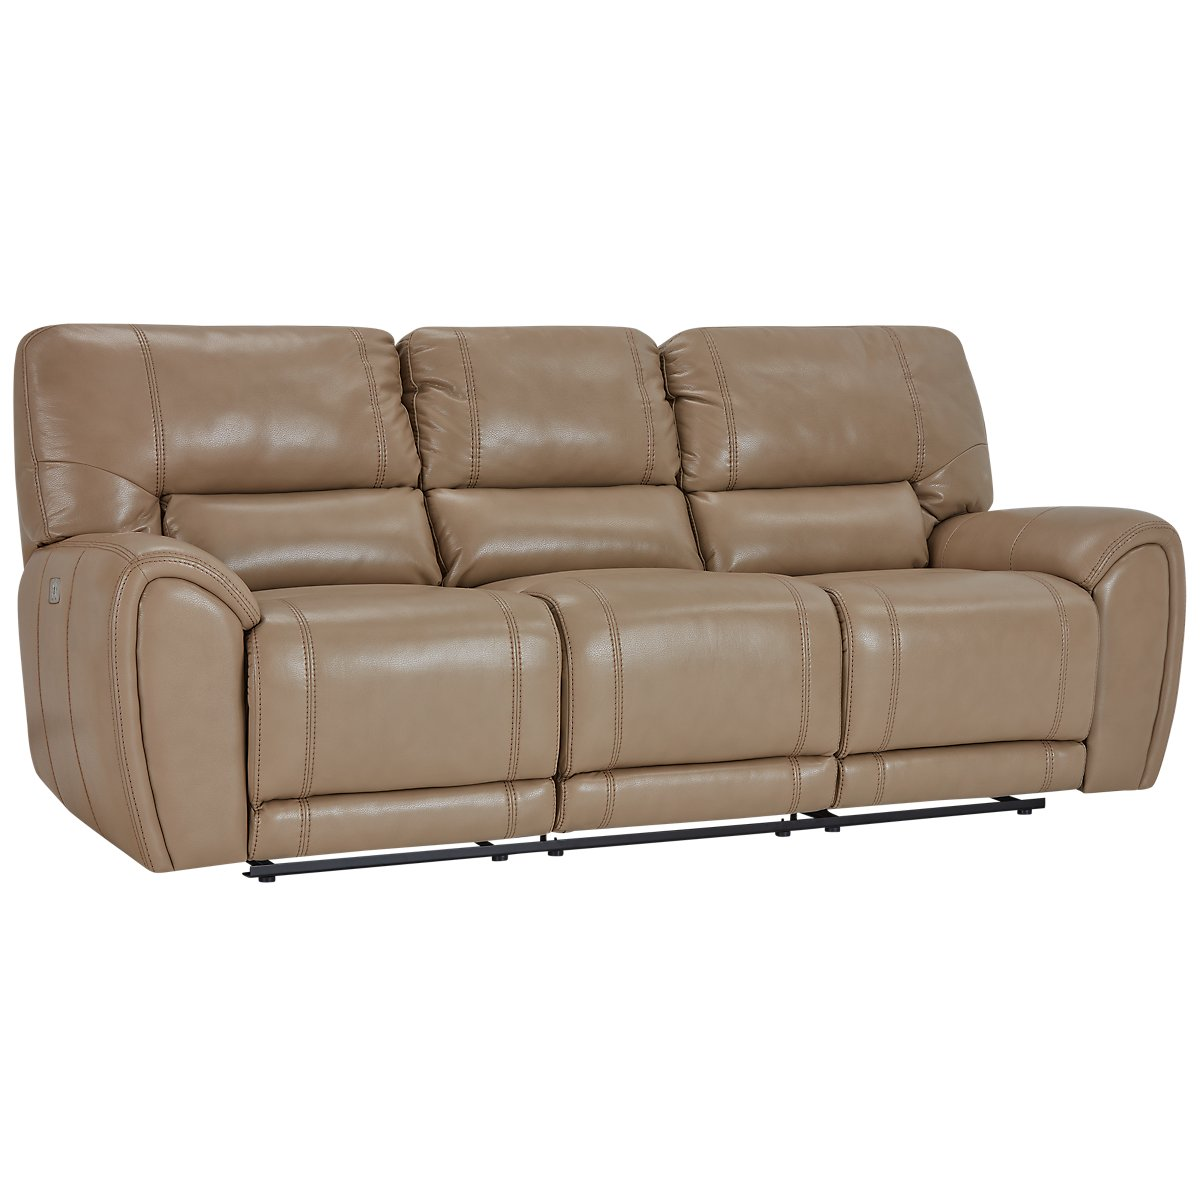 Bailey Taupe Microfiber Power Reclining Sofa